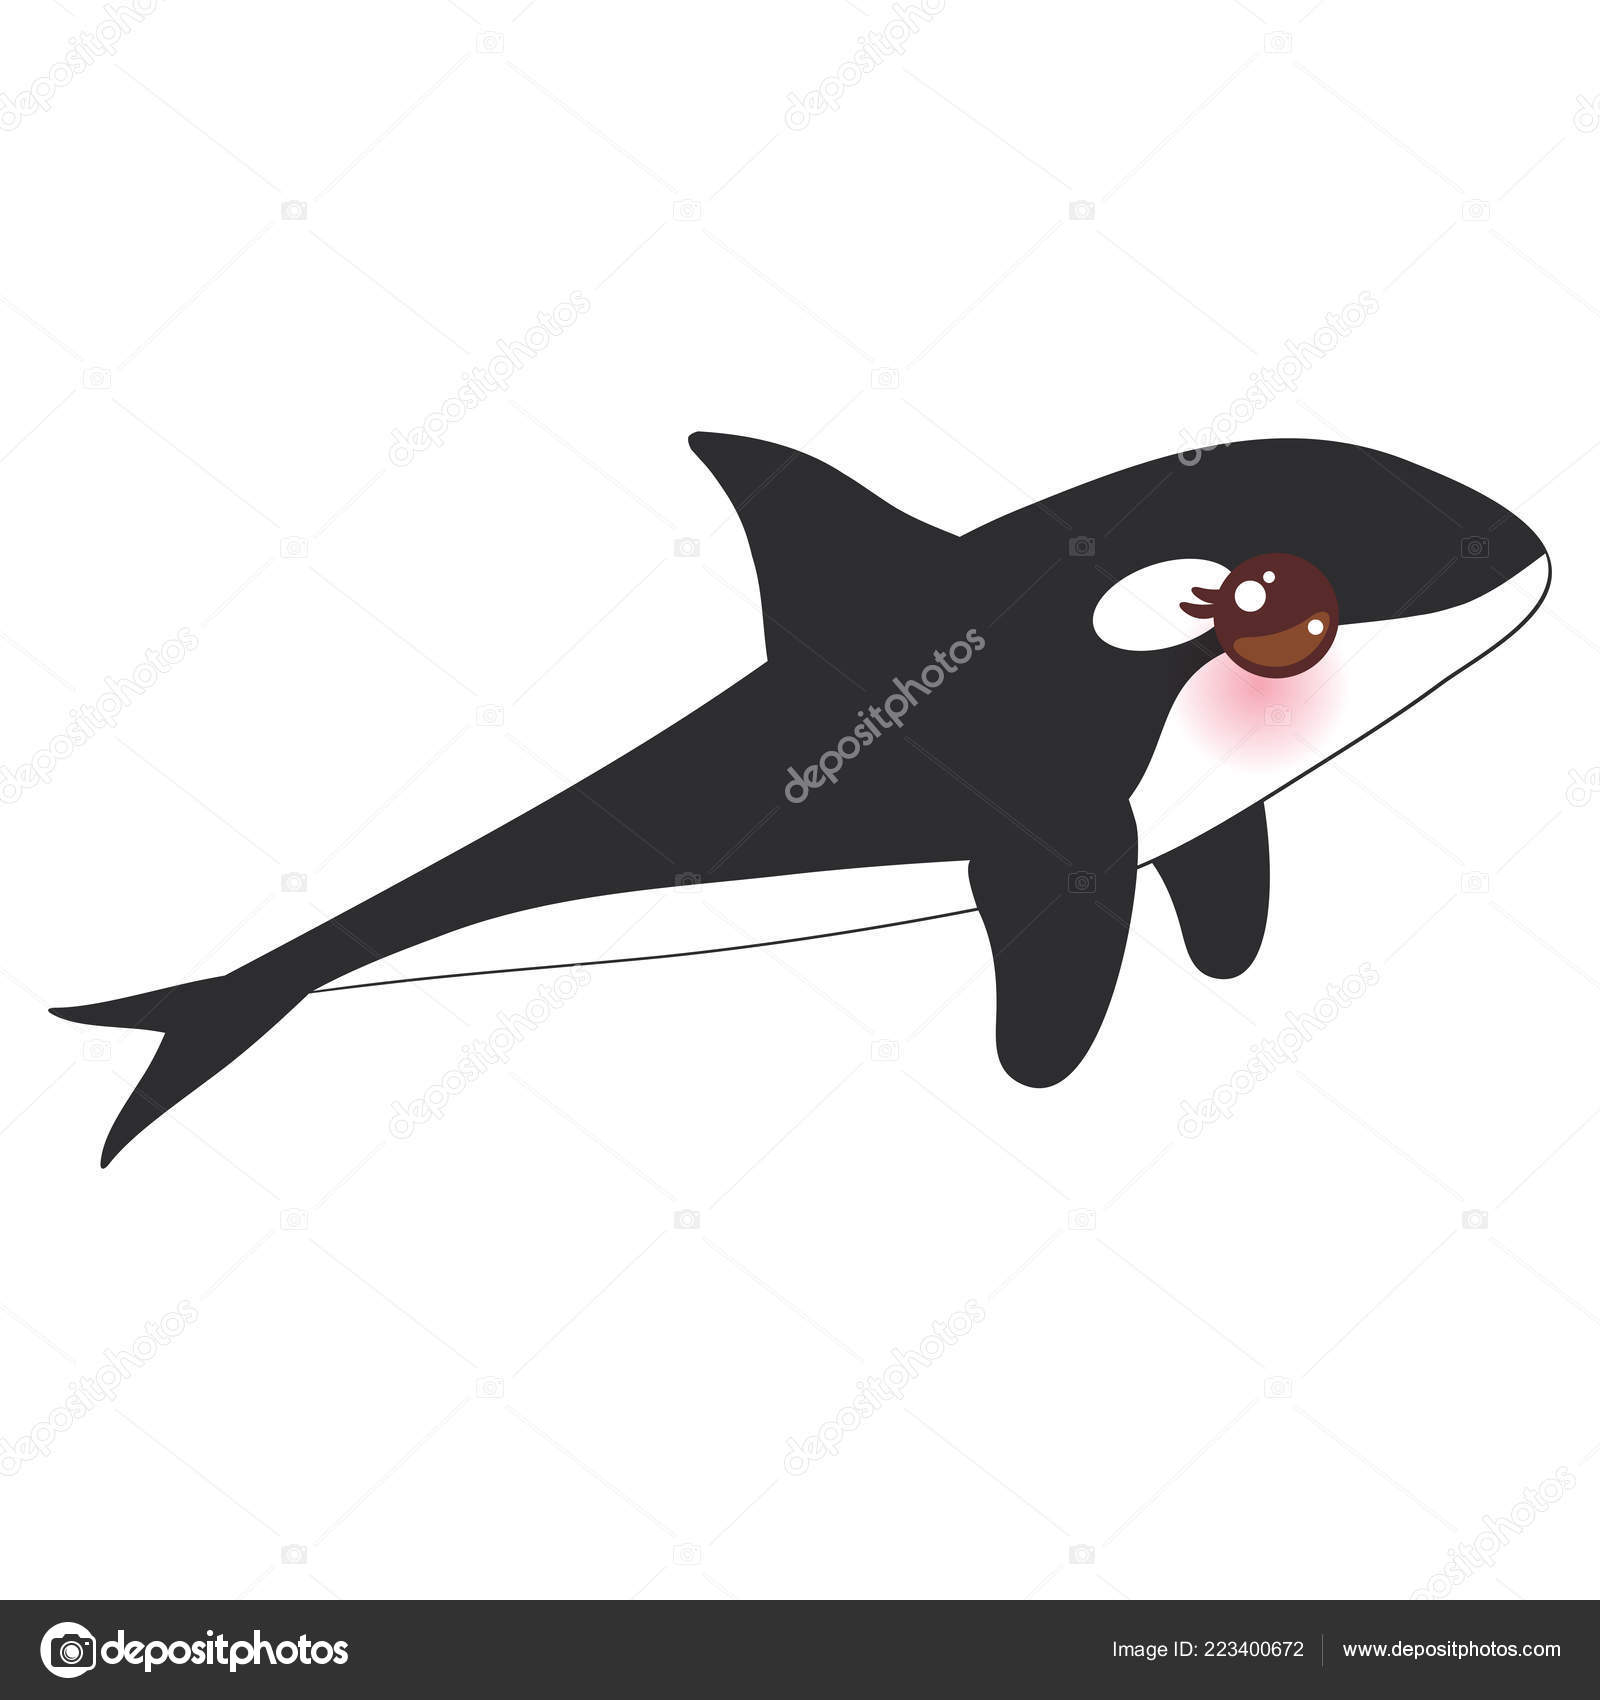 Cartone Animato Grampus Orca Balena Assassino Lupo Mare Kawaii Con